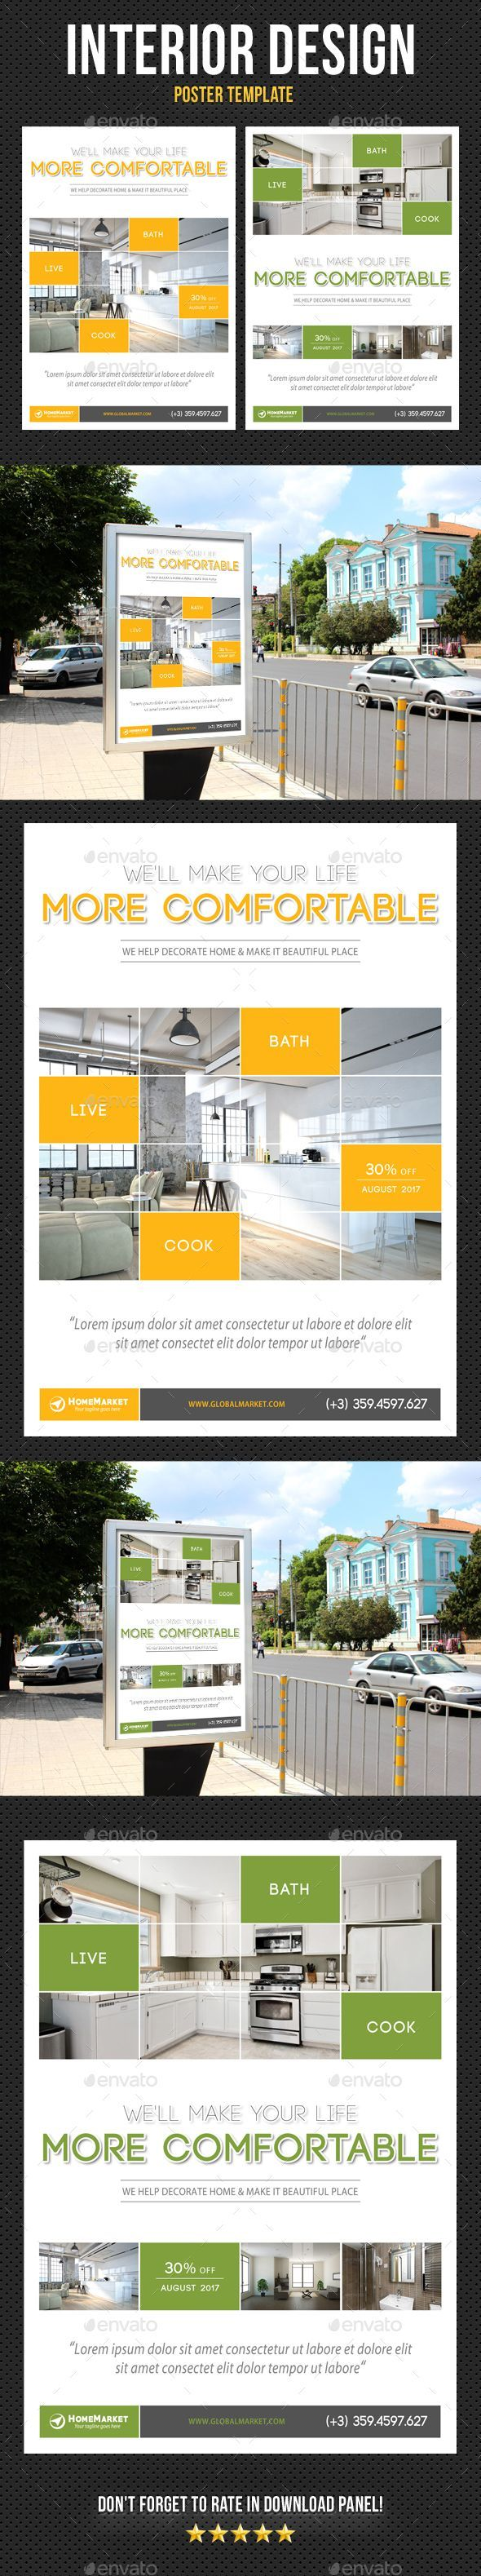 Interior Design Poster Template V11 - Signage Print Templates - Graphic Templates